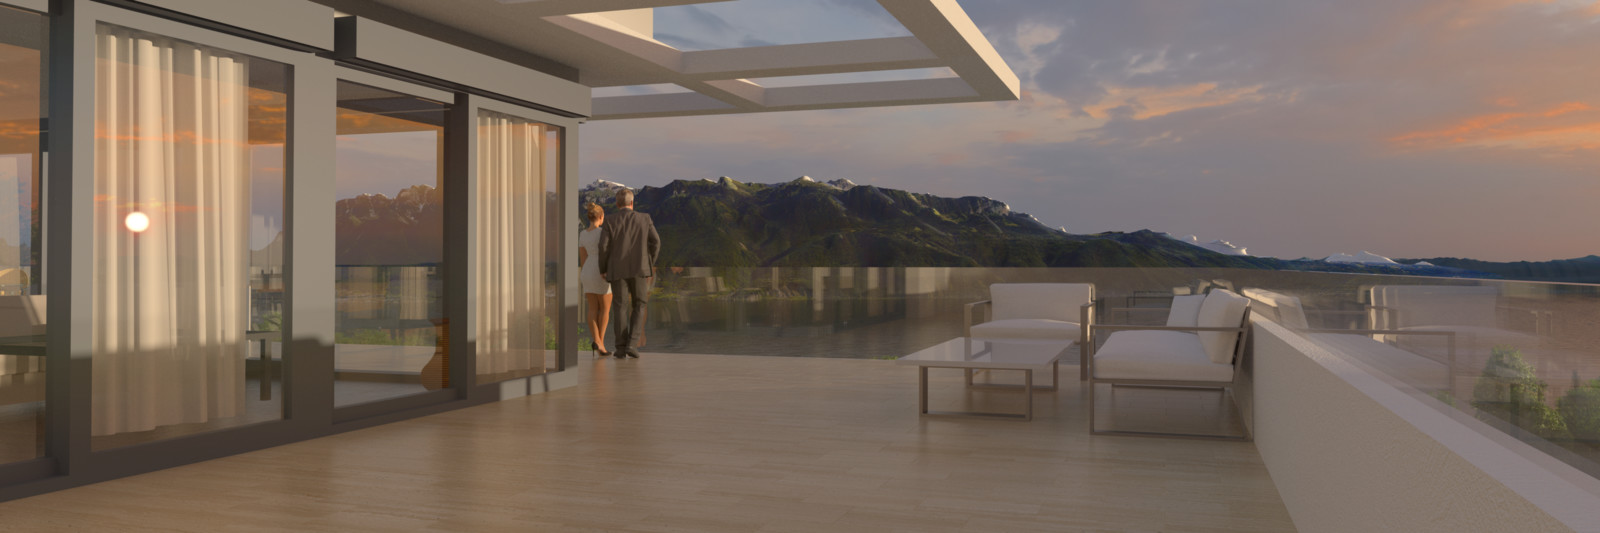 SketchUp + Thea Render  Lutry, Switzerland Scene Vue Lac 04 C Rise